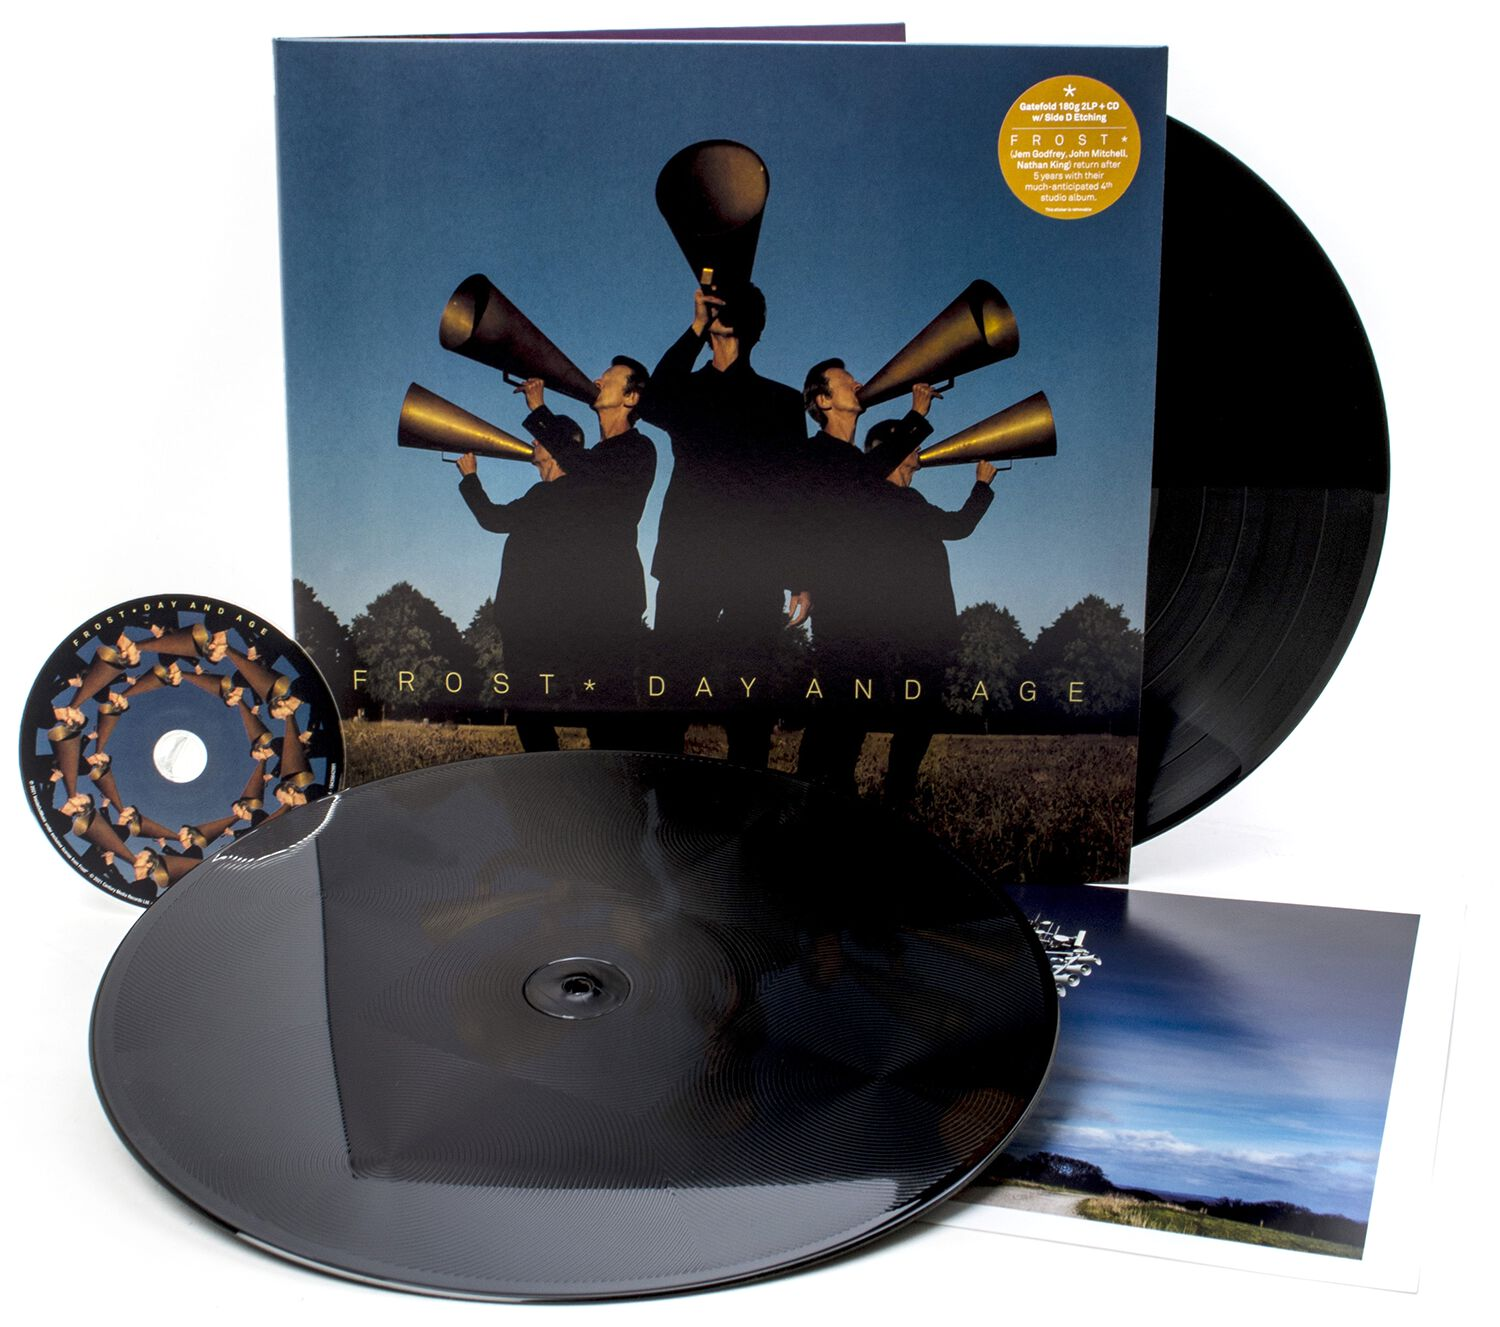 Image of Frost* Day and age 2-LP & CD schwarz